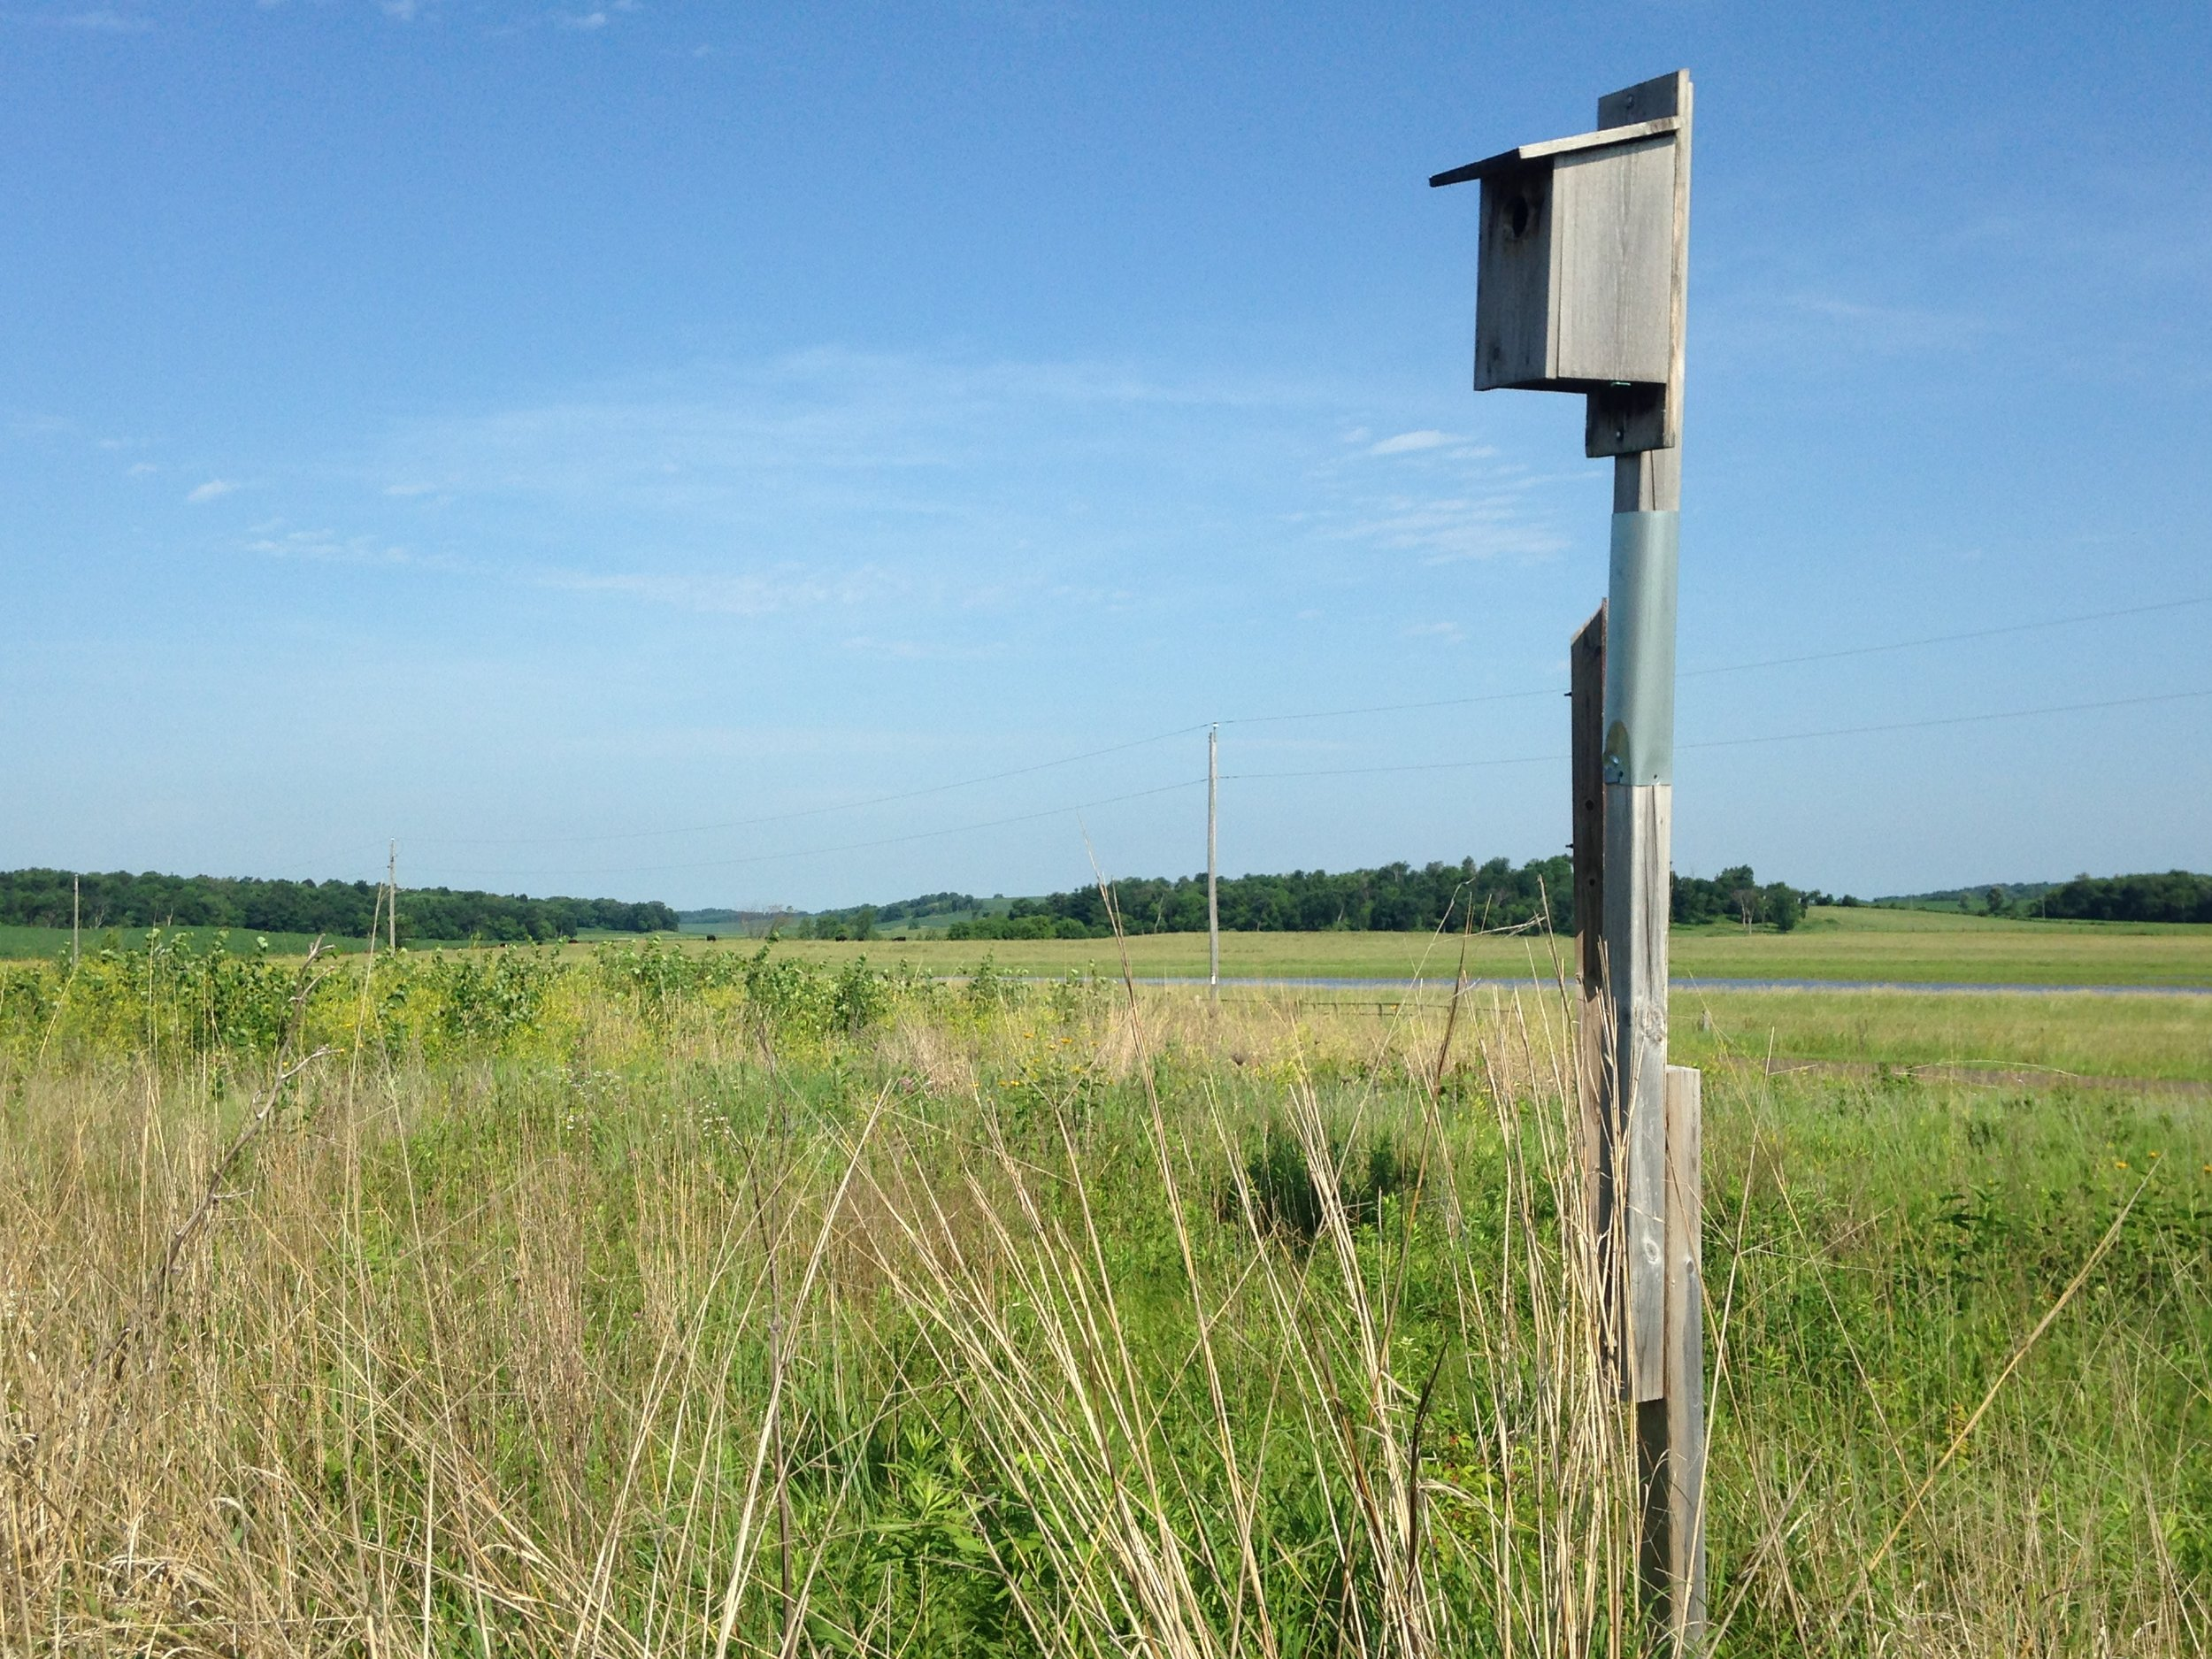 One of Madison Audubon's nestboxes sits in a grassland, filled with young kestrels. MAS Photo